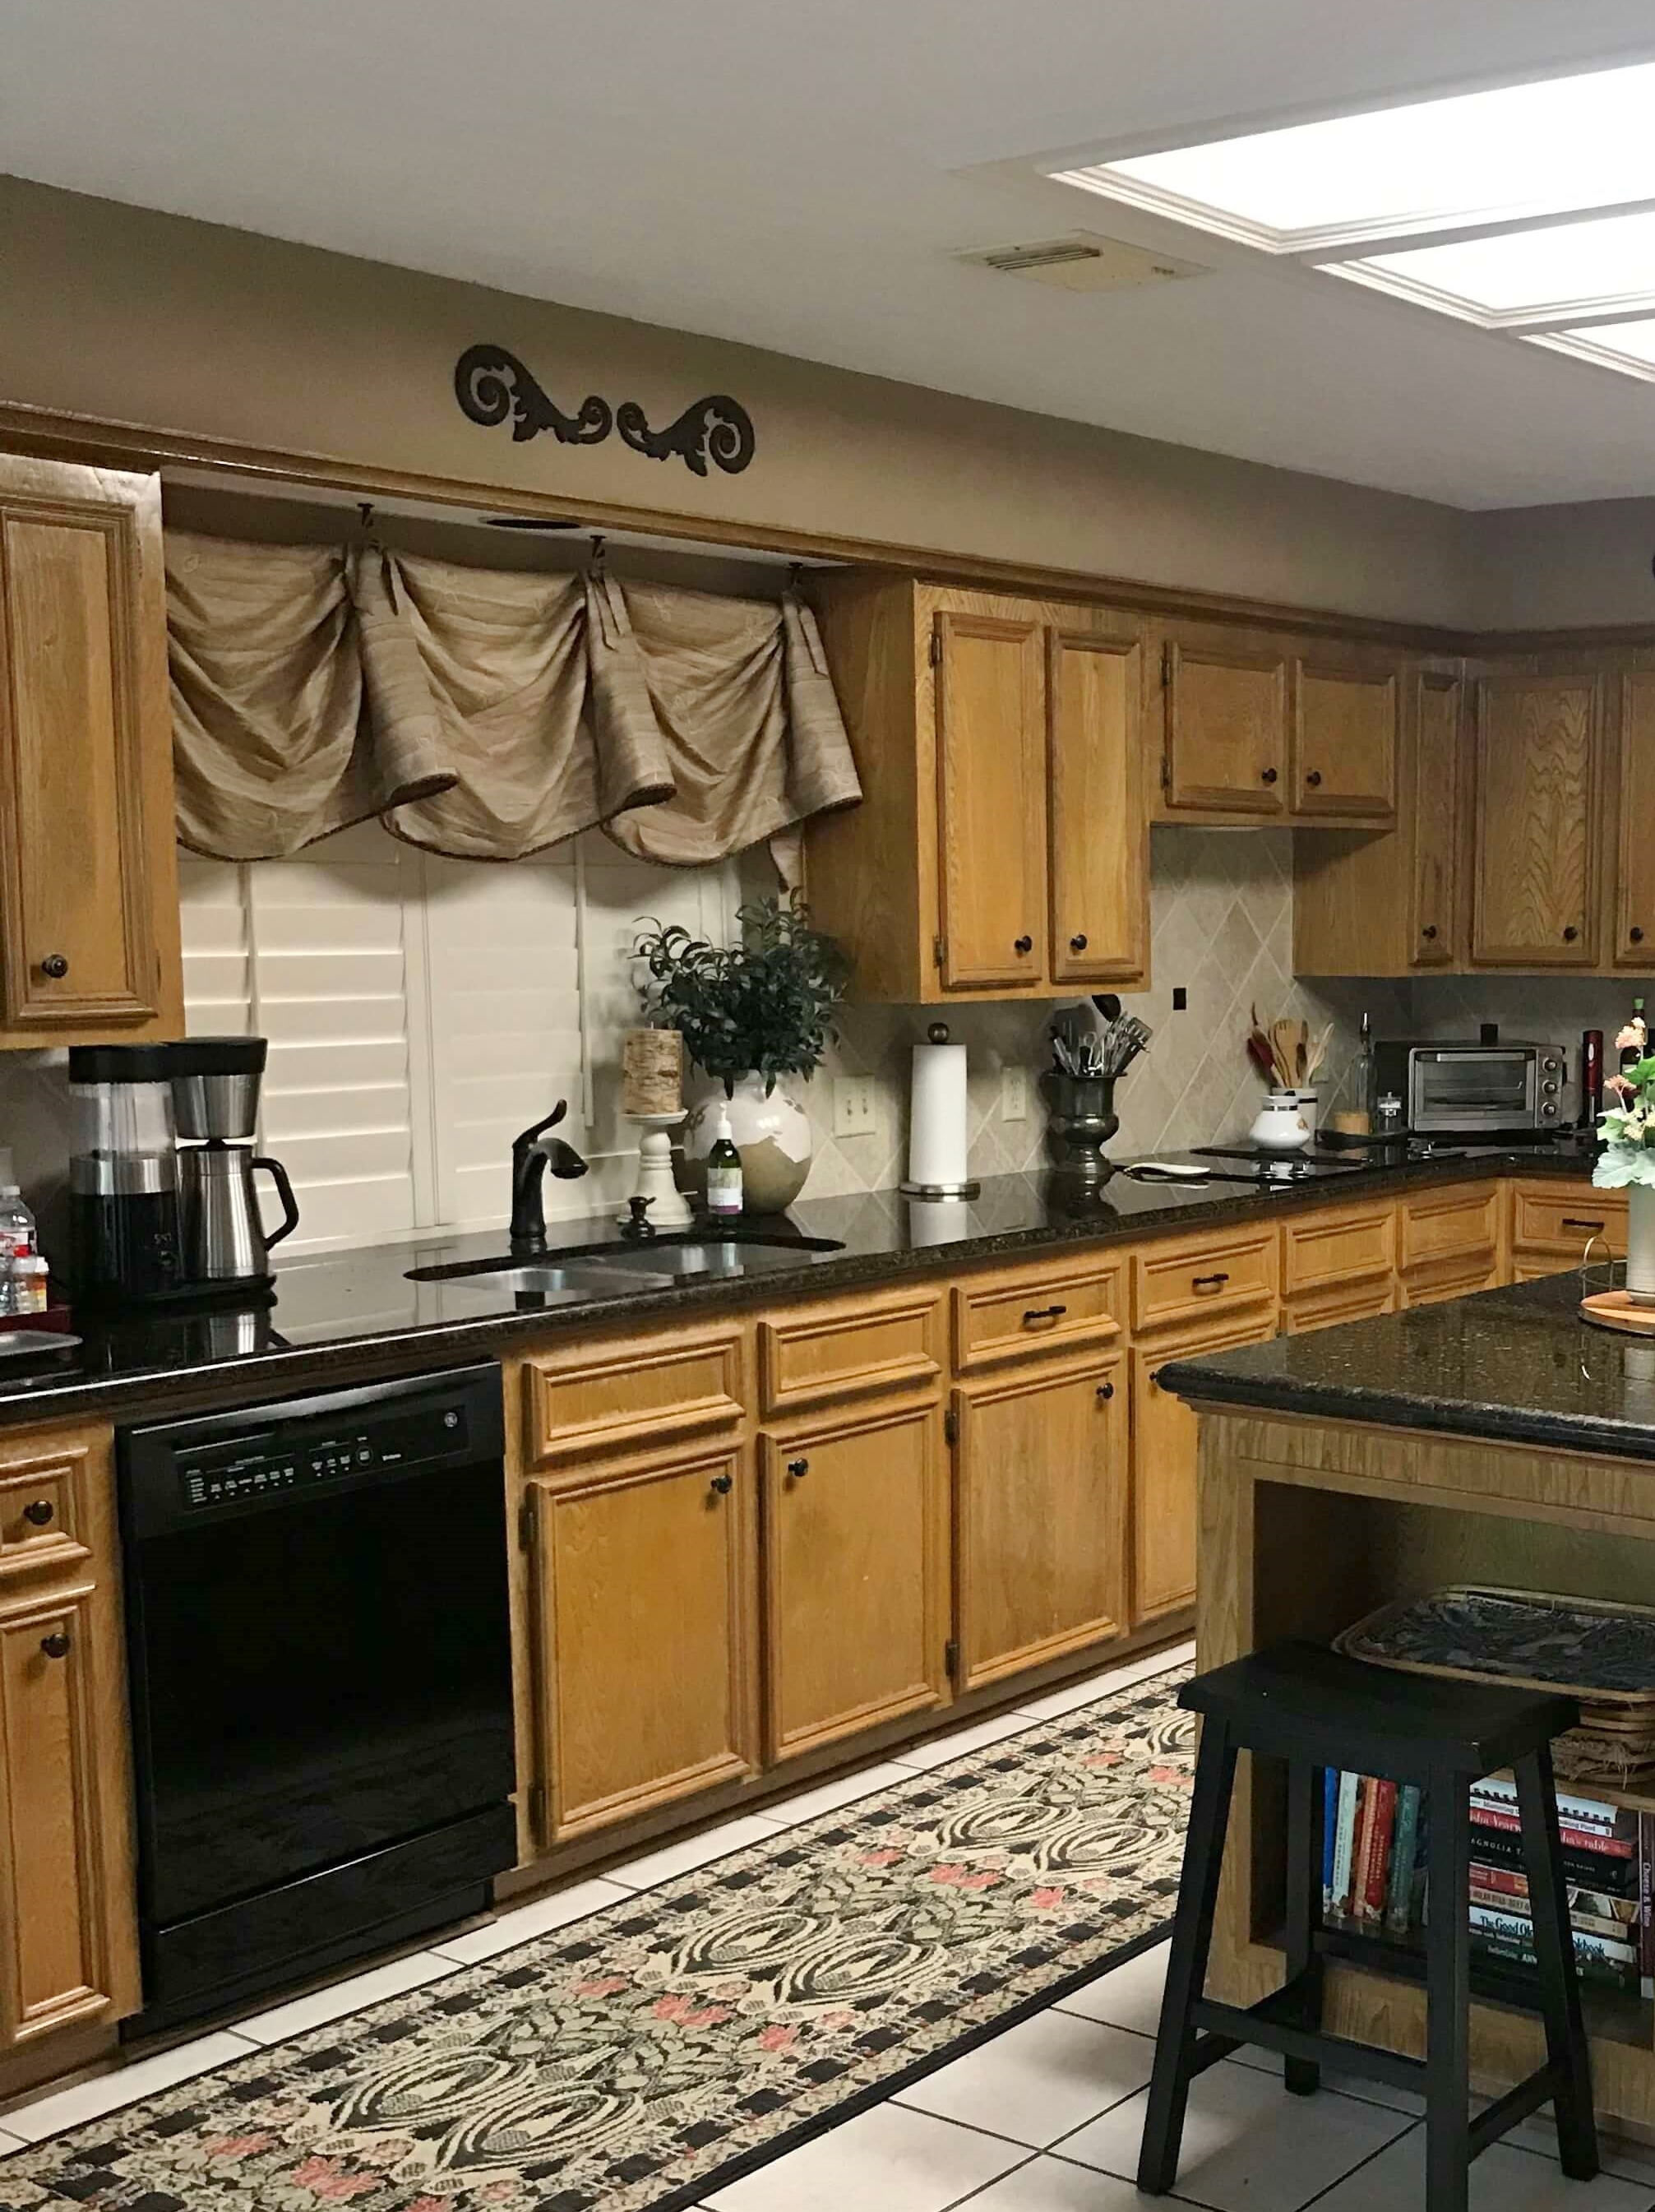 These valances cover half the window area. Since there are shutters here, I don't think any valance is needed. They can take the backsplash tile up and around the window. #valances #windowtreatments